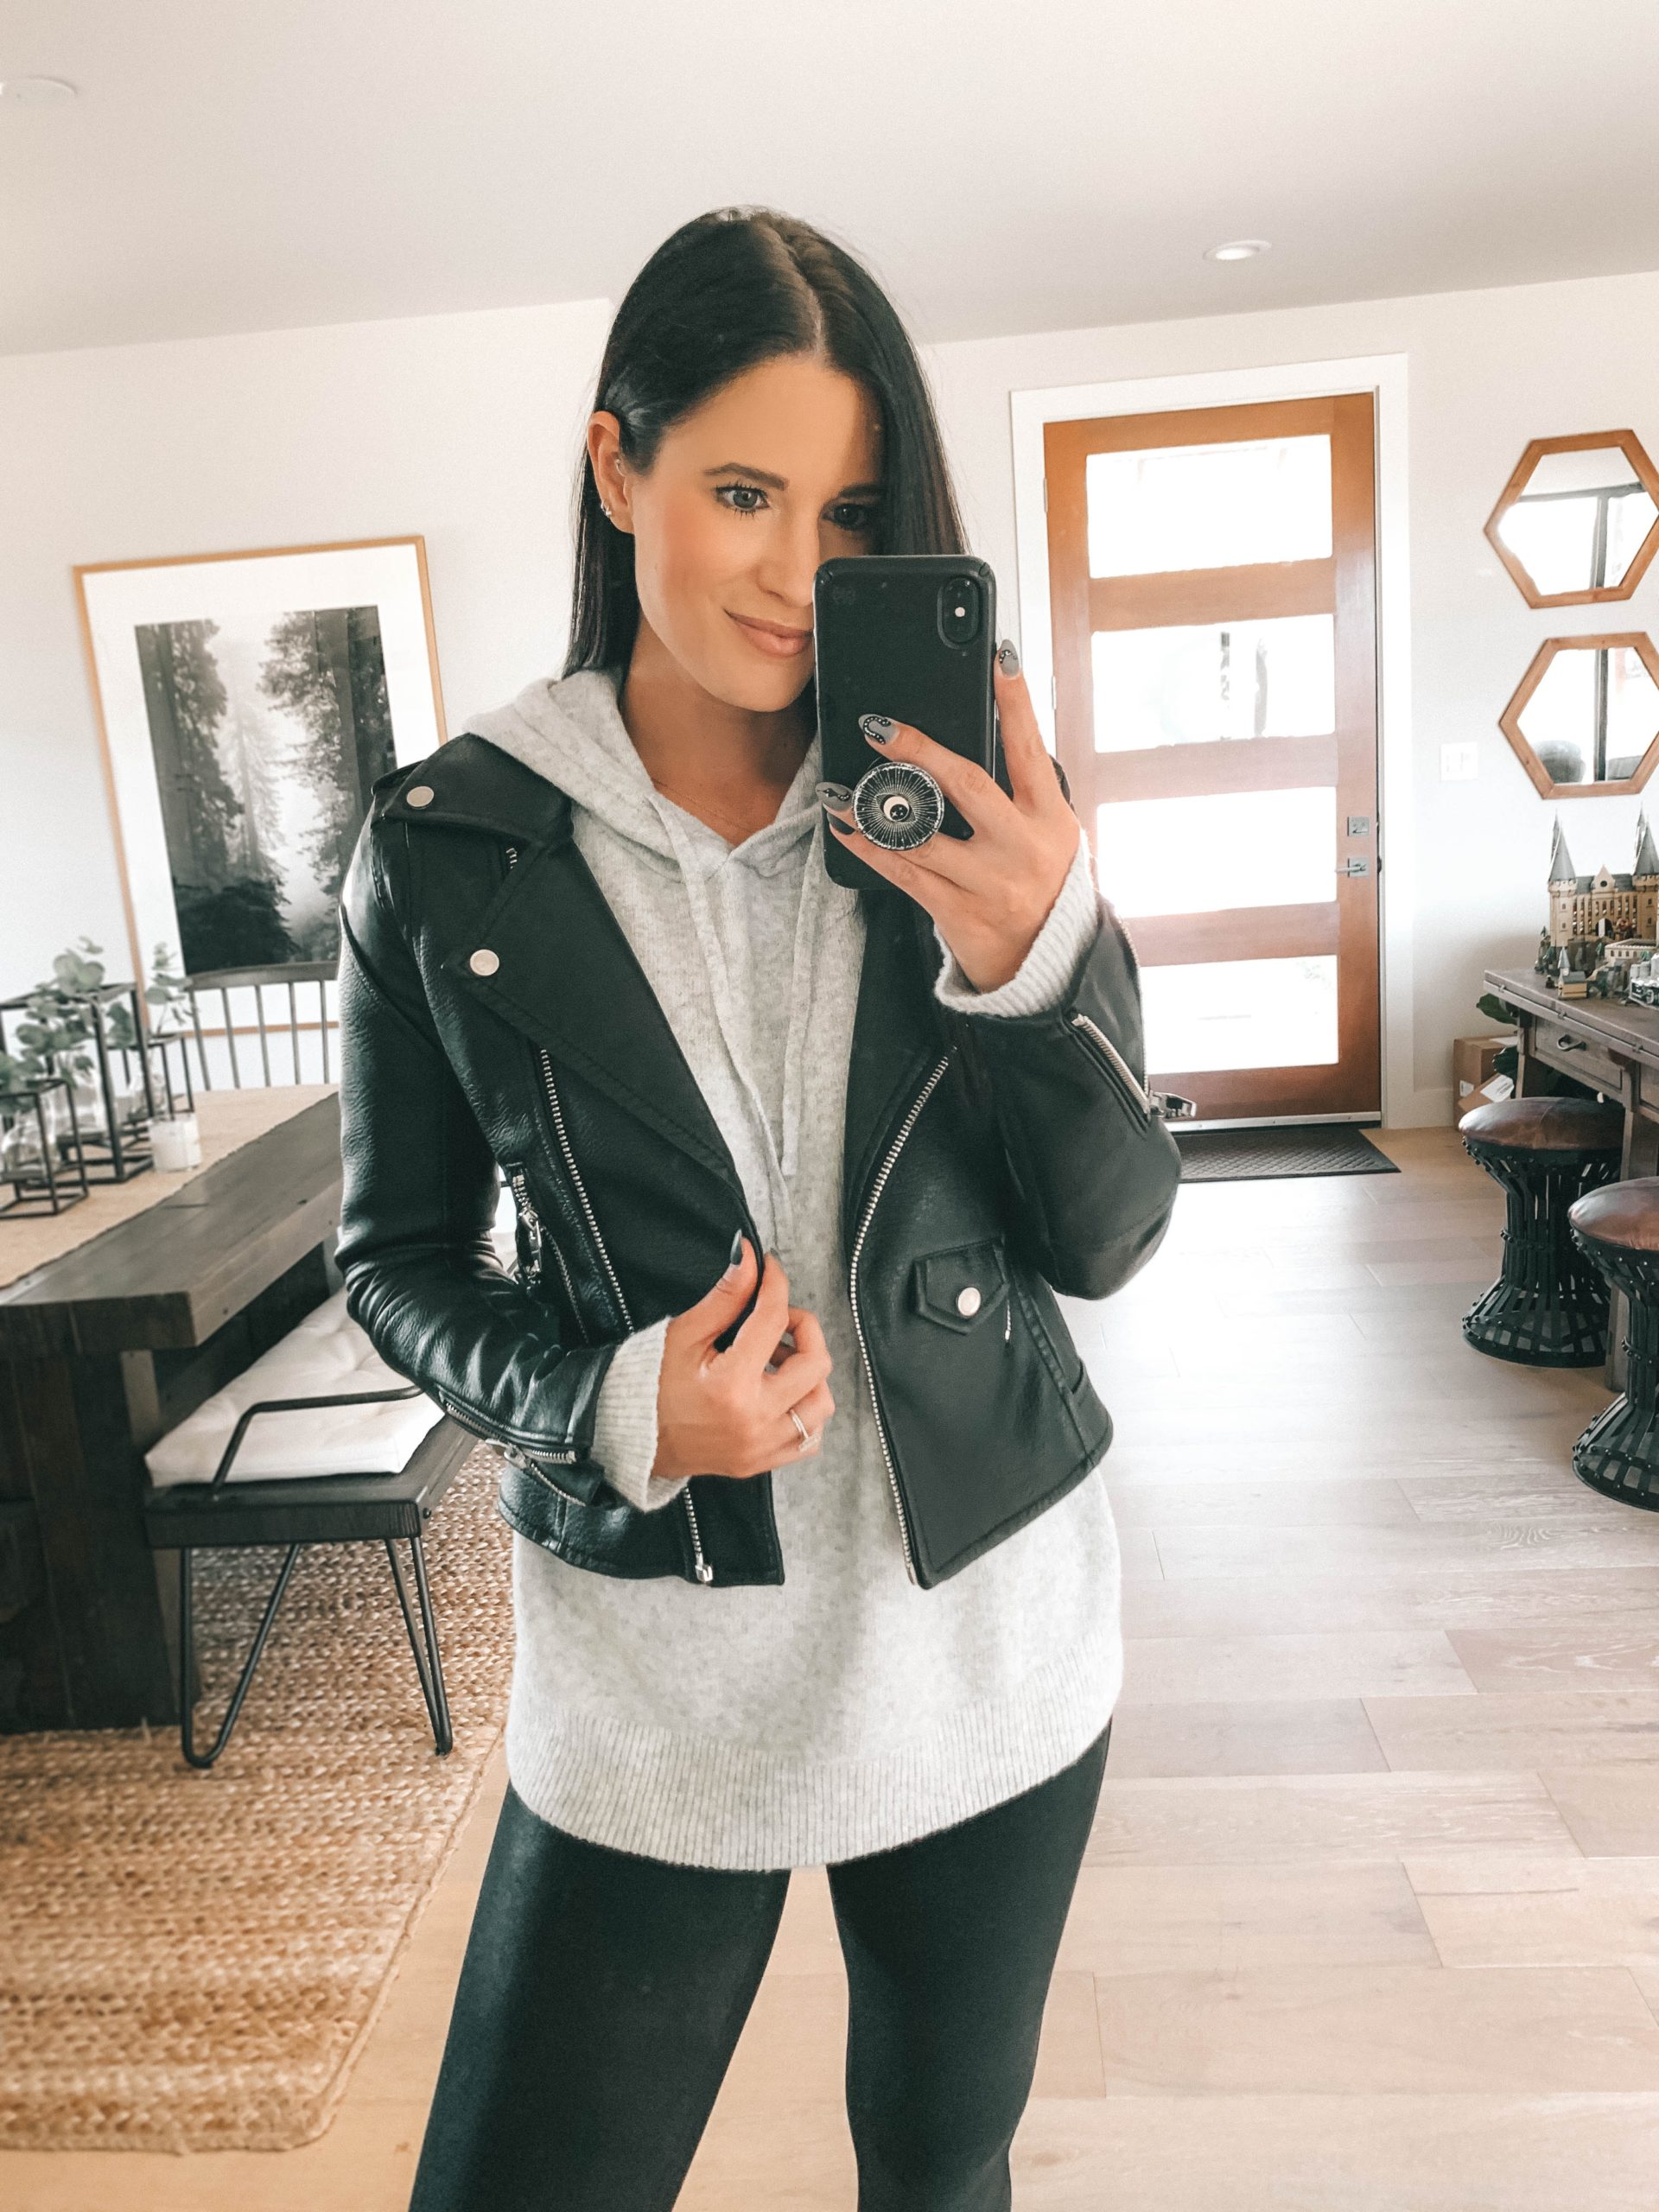 Nordstrom Anniversary Sale by popular Austin fashion blog, Dressed to Kill: image of a woman wearing a Nordstrom Faux Leather Leggings SPANX, Nordstrom Good Vibes Faux Leather Moto Jacket BLANKNYC and Nordstrom Cotton Blend Sweater Hoodie TREASURE & BOND.